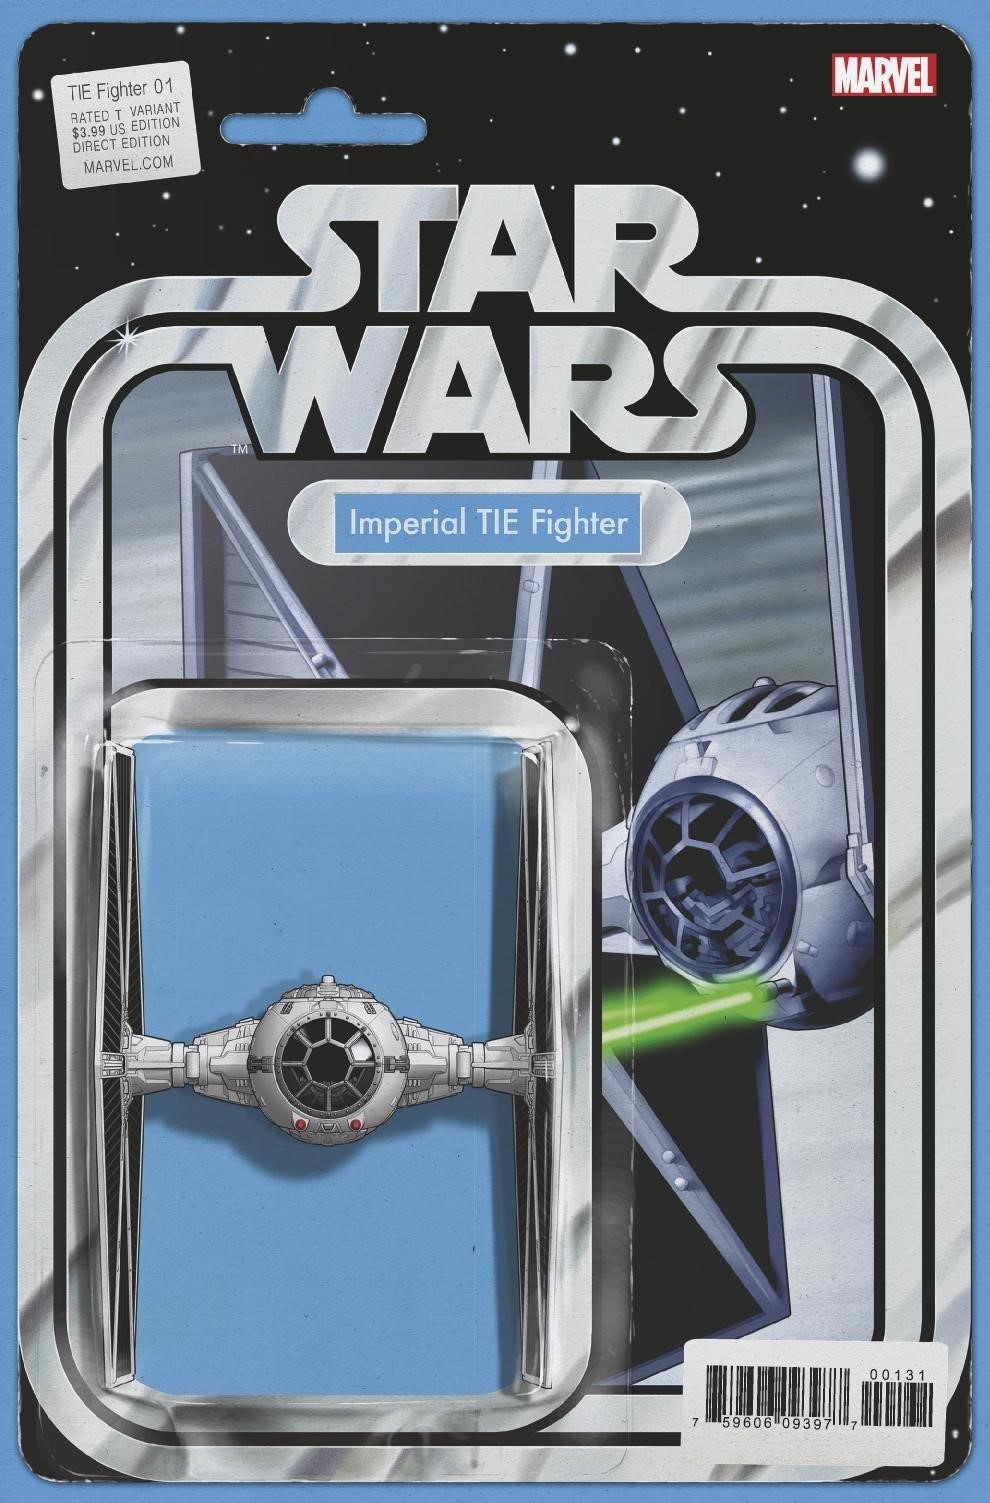 STAR WARS TIE FIGHTER #1 (OF 5) CHRISTOPHER ACTION FIGURE VE